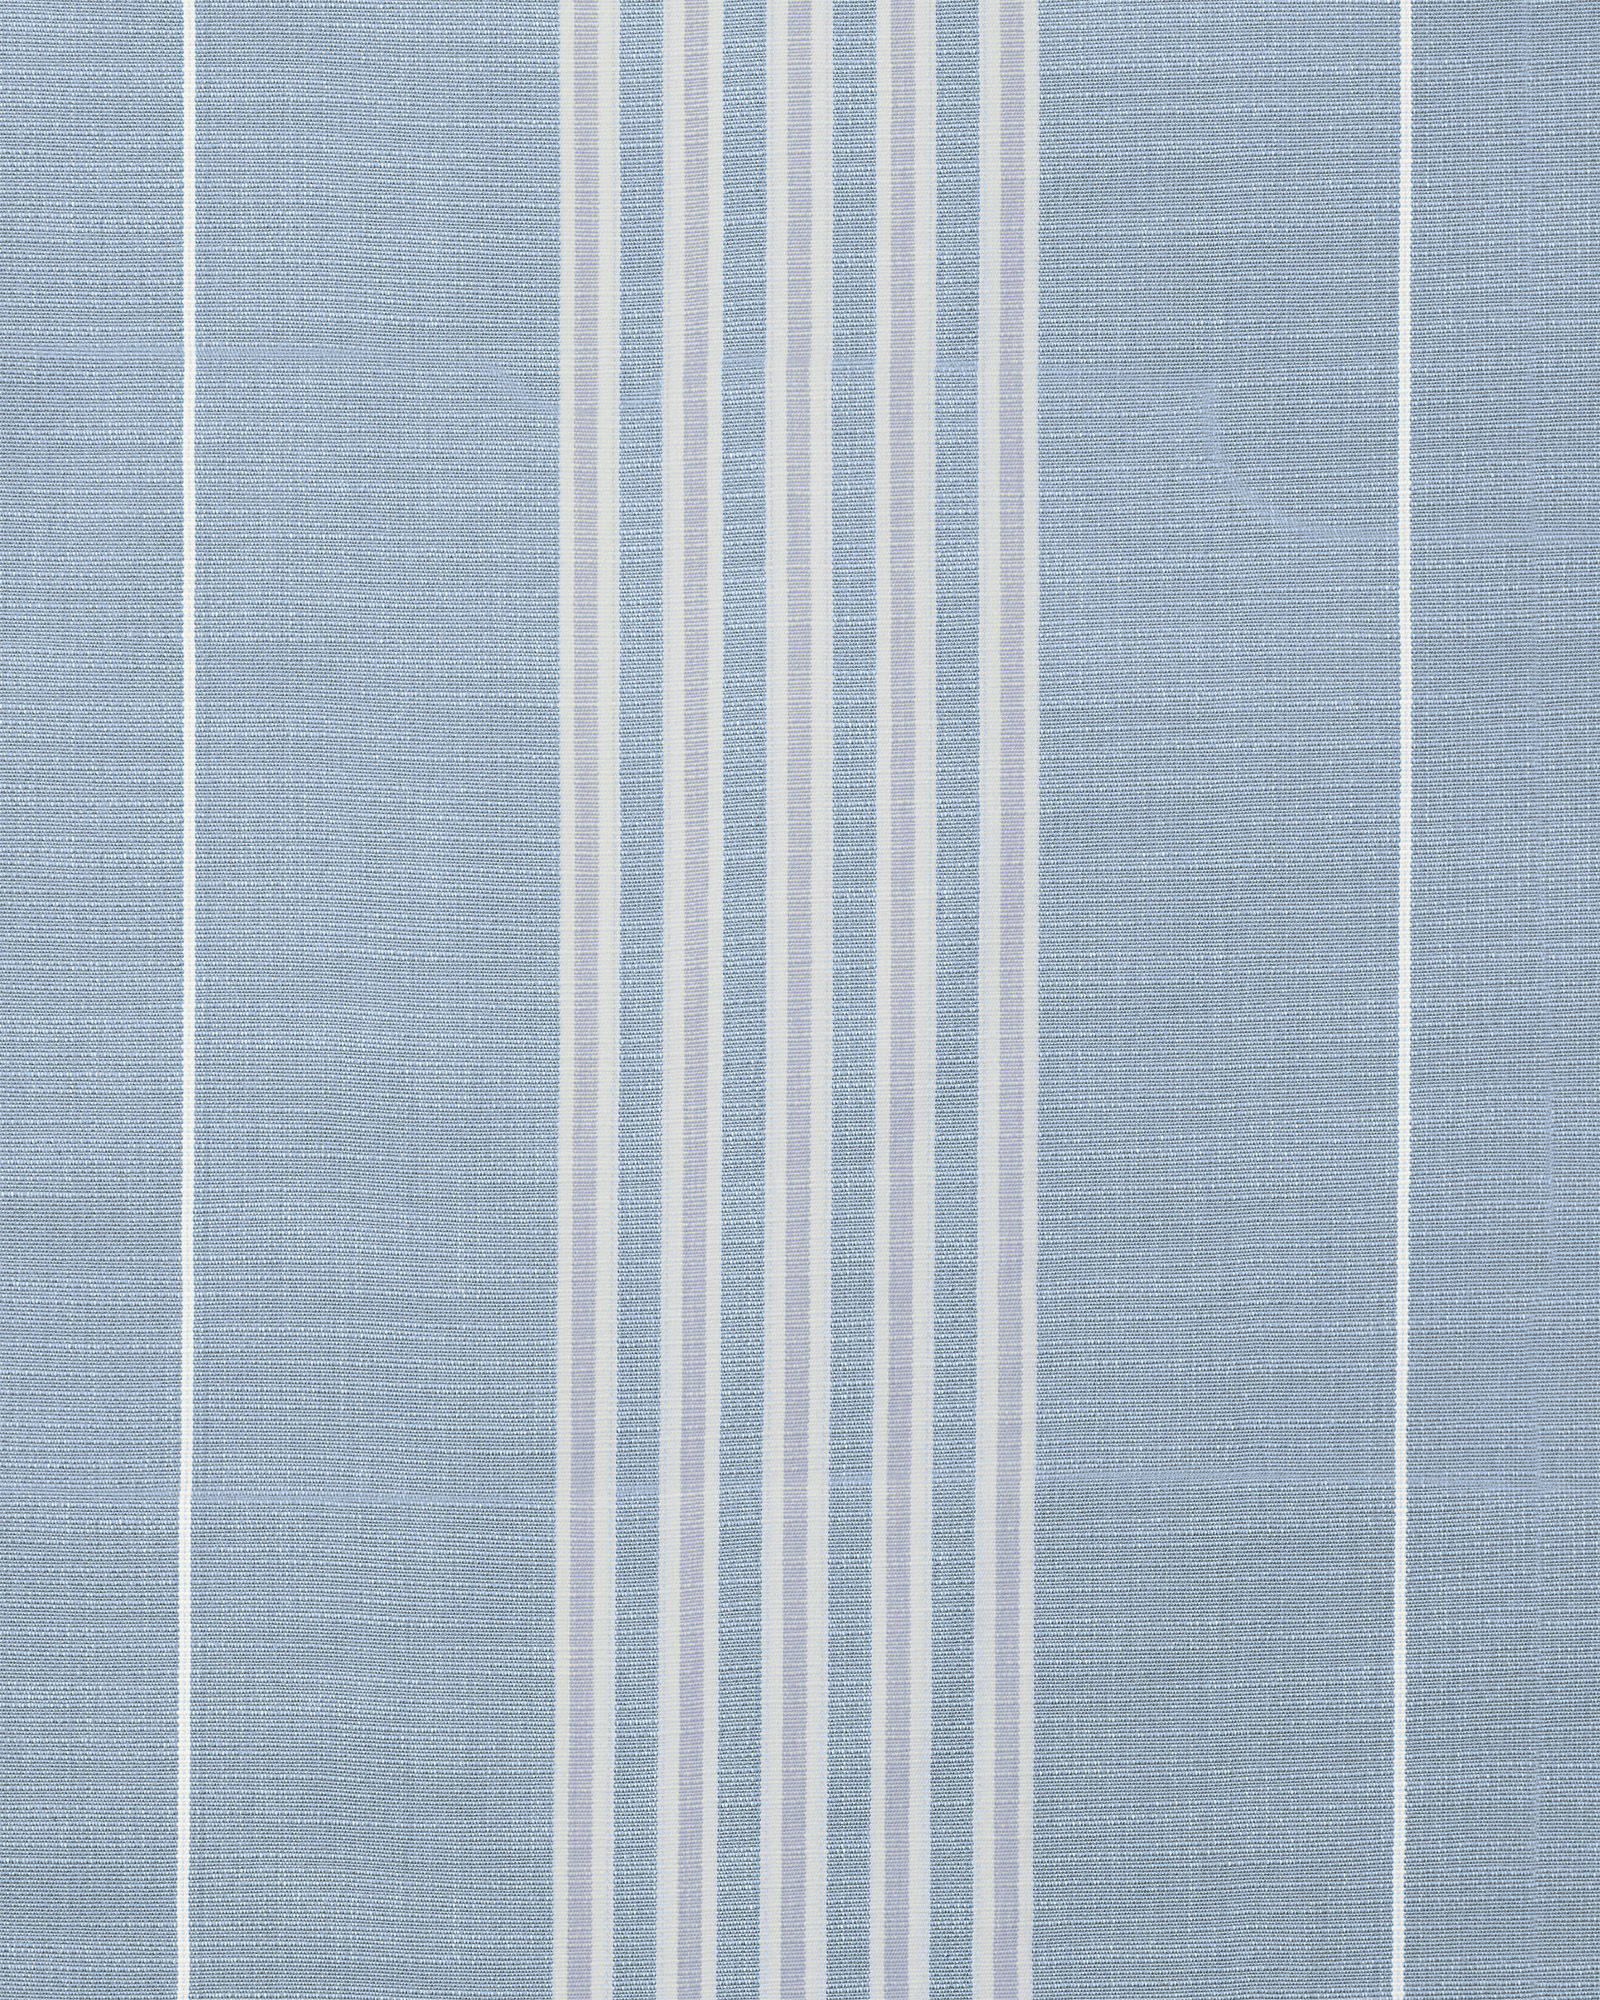 Perennials® Lake Stripe - Coastal/Sky,